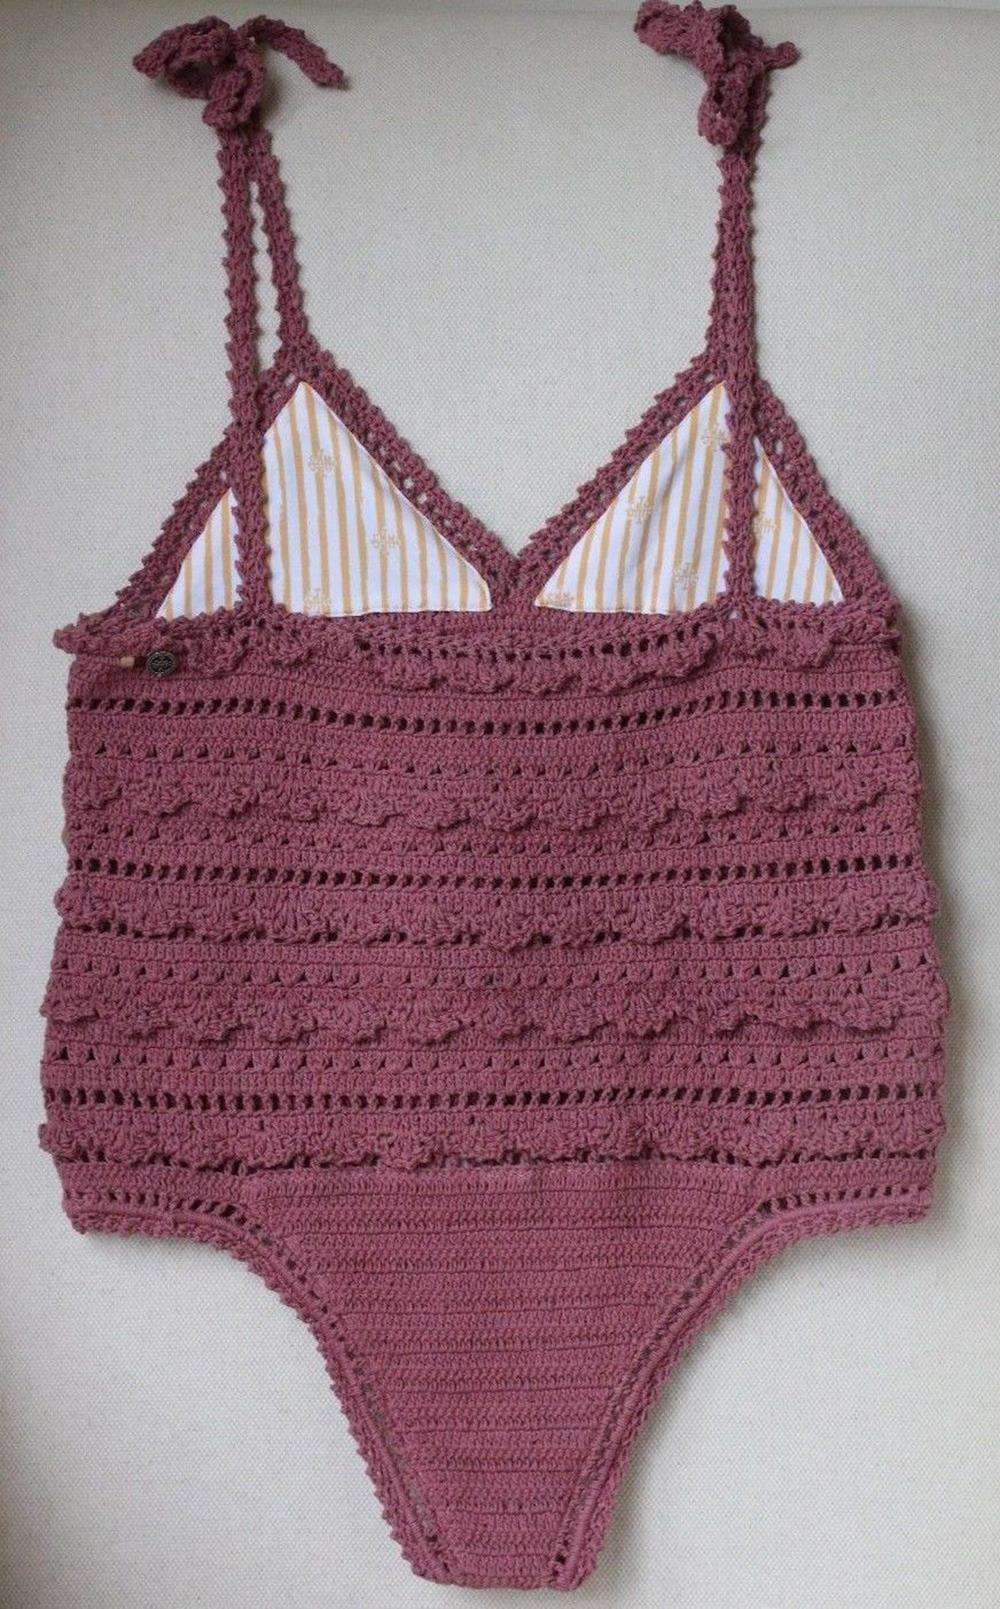 SHE MADE ME AMIRA CROCHETED COTTON SWIMSUIT M/L